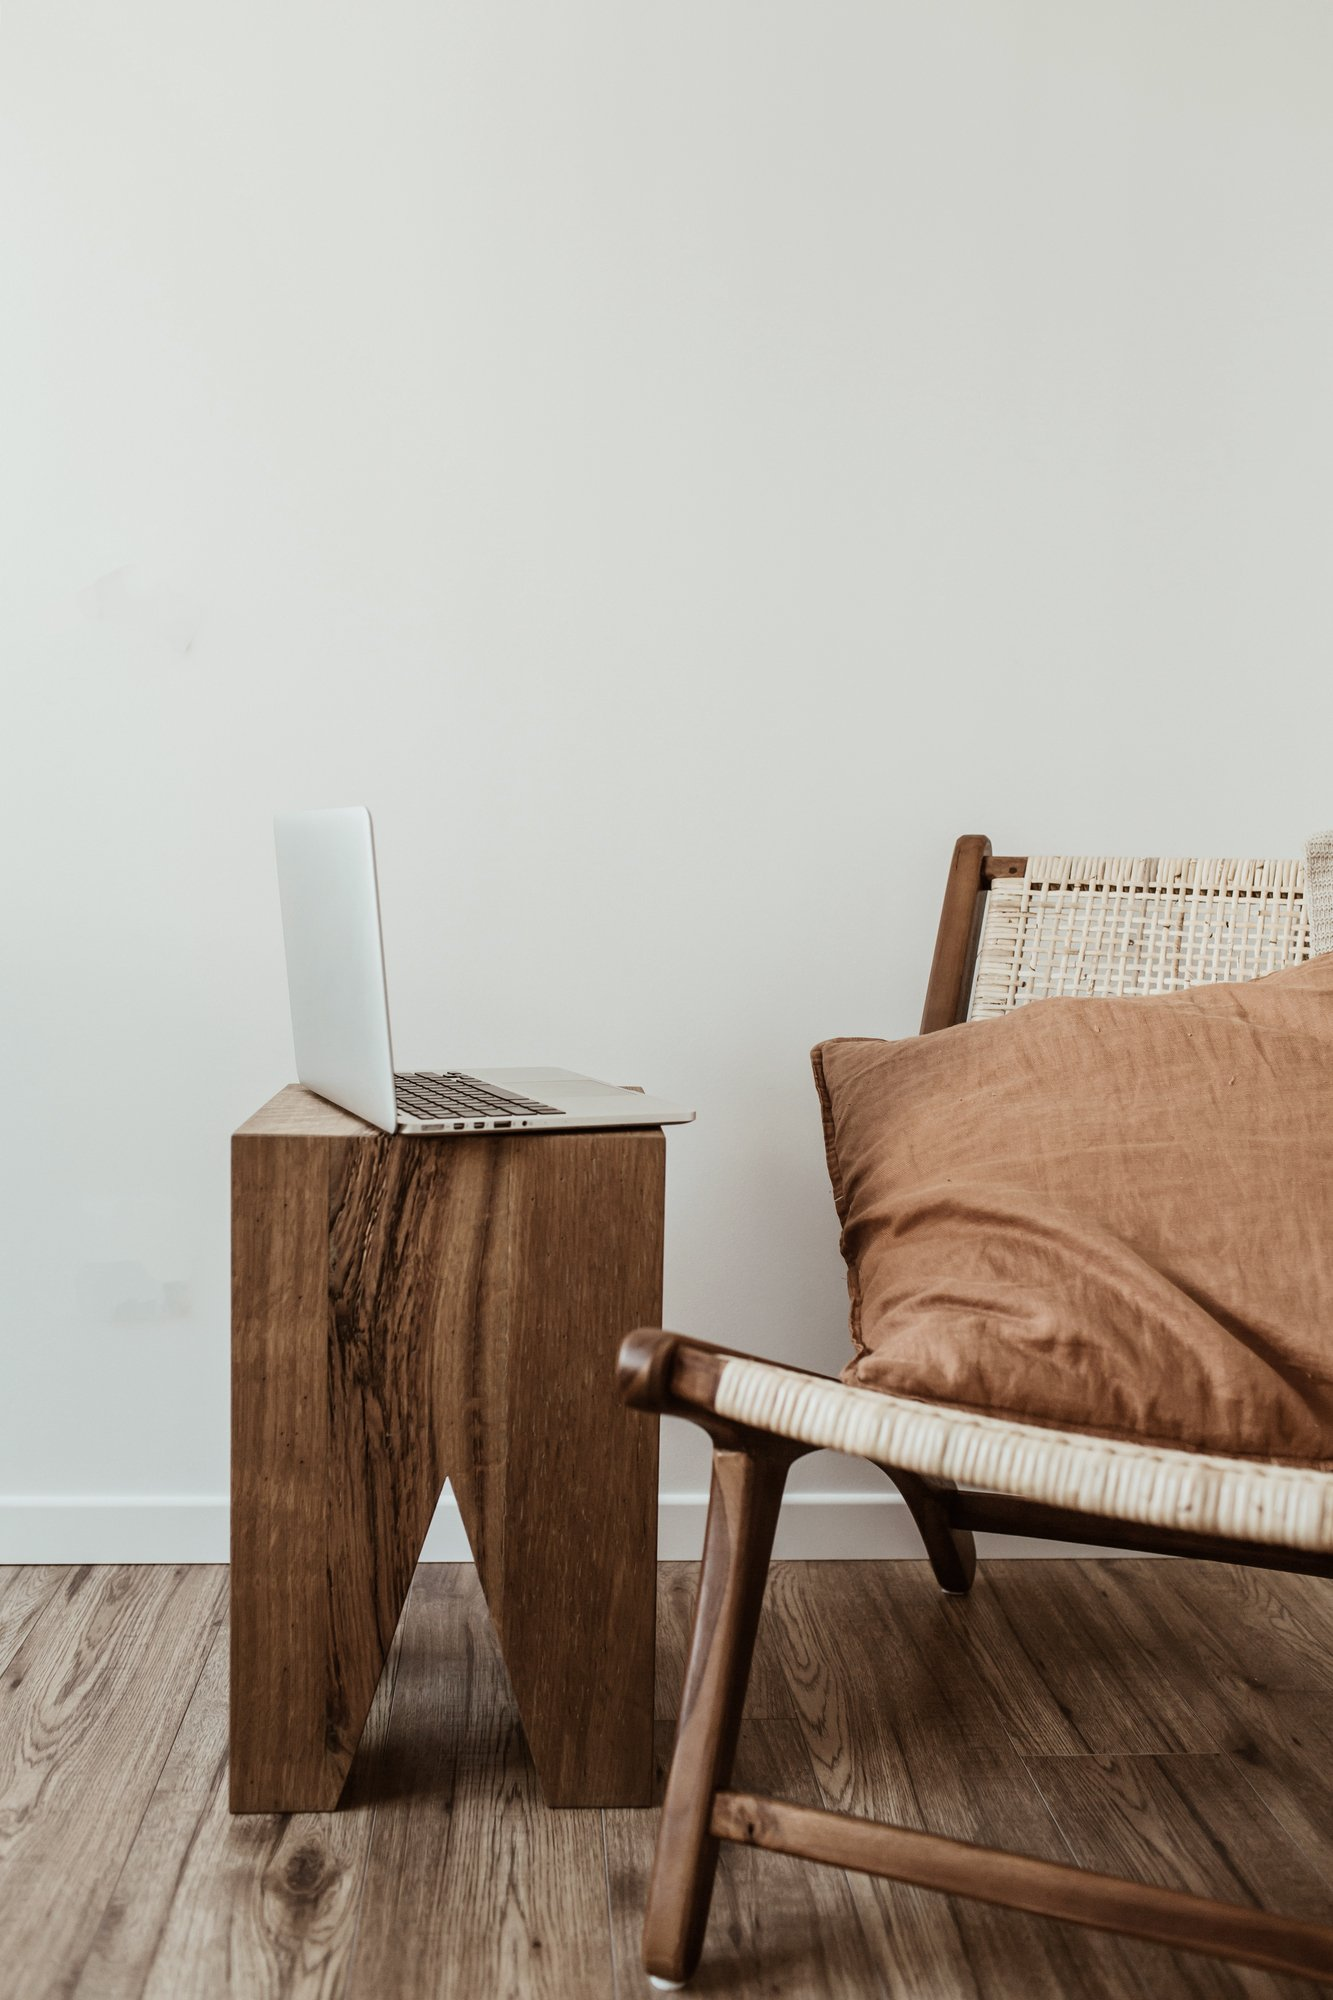 Modern interior design concept. Stylish rattan wooden chair, knitted plaid, ginger pillow. Home office workspace with laptop.